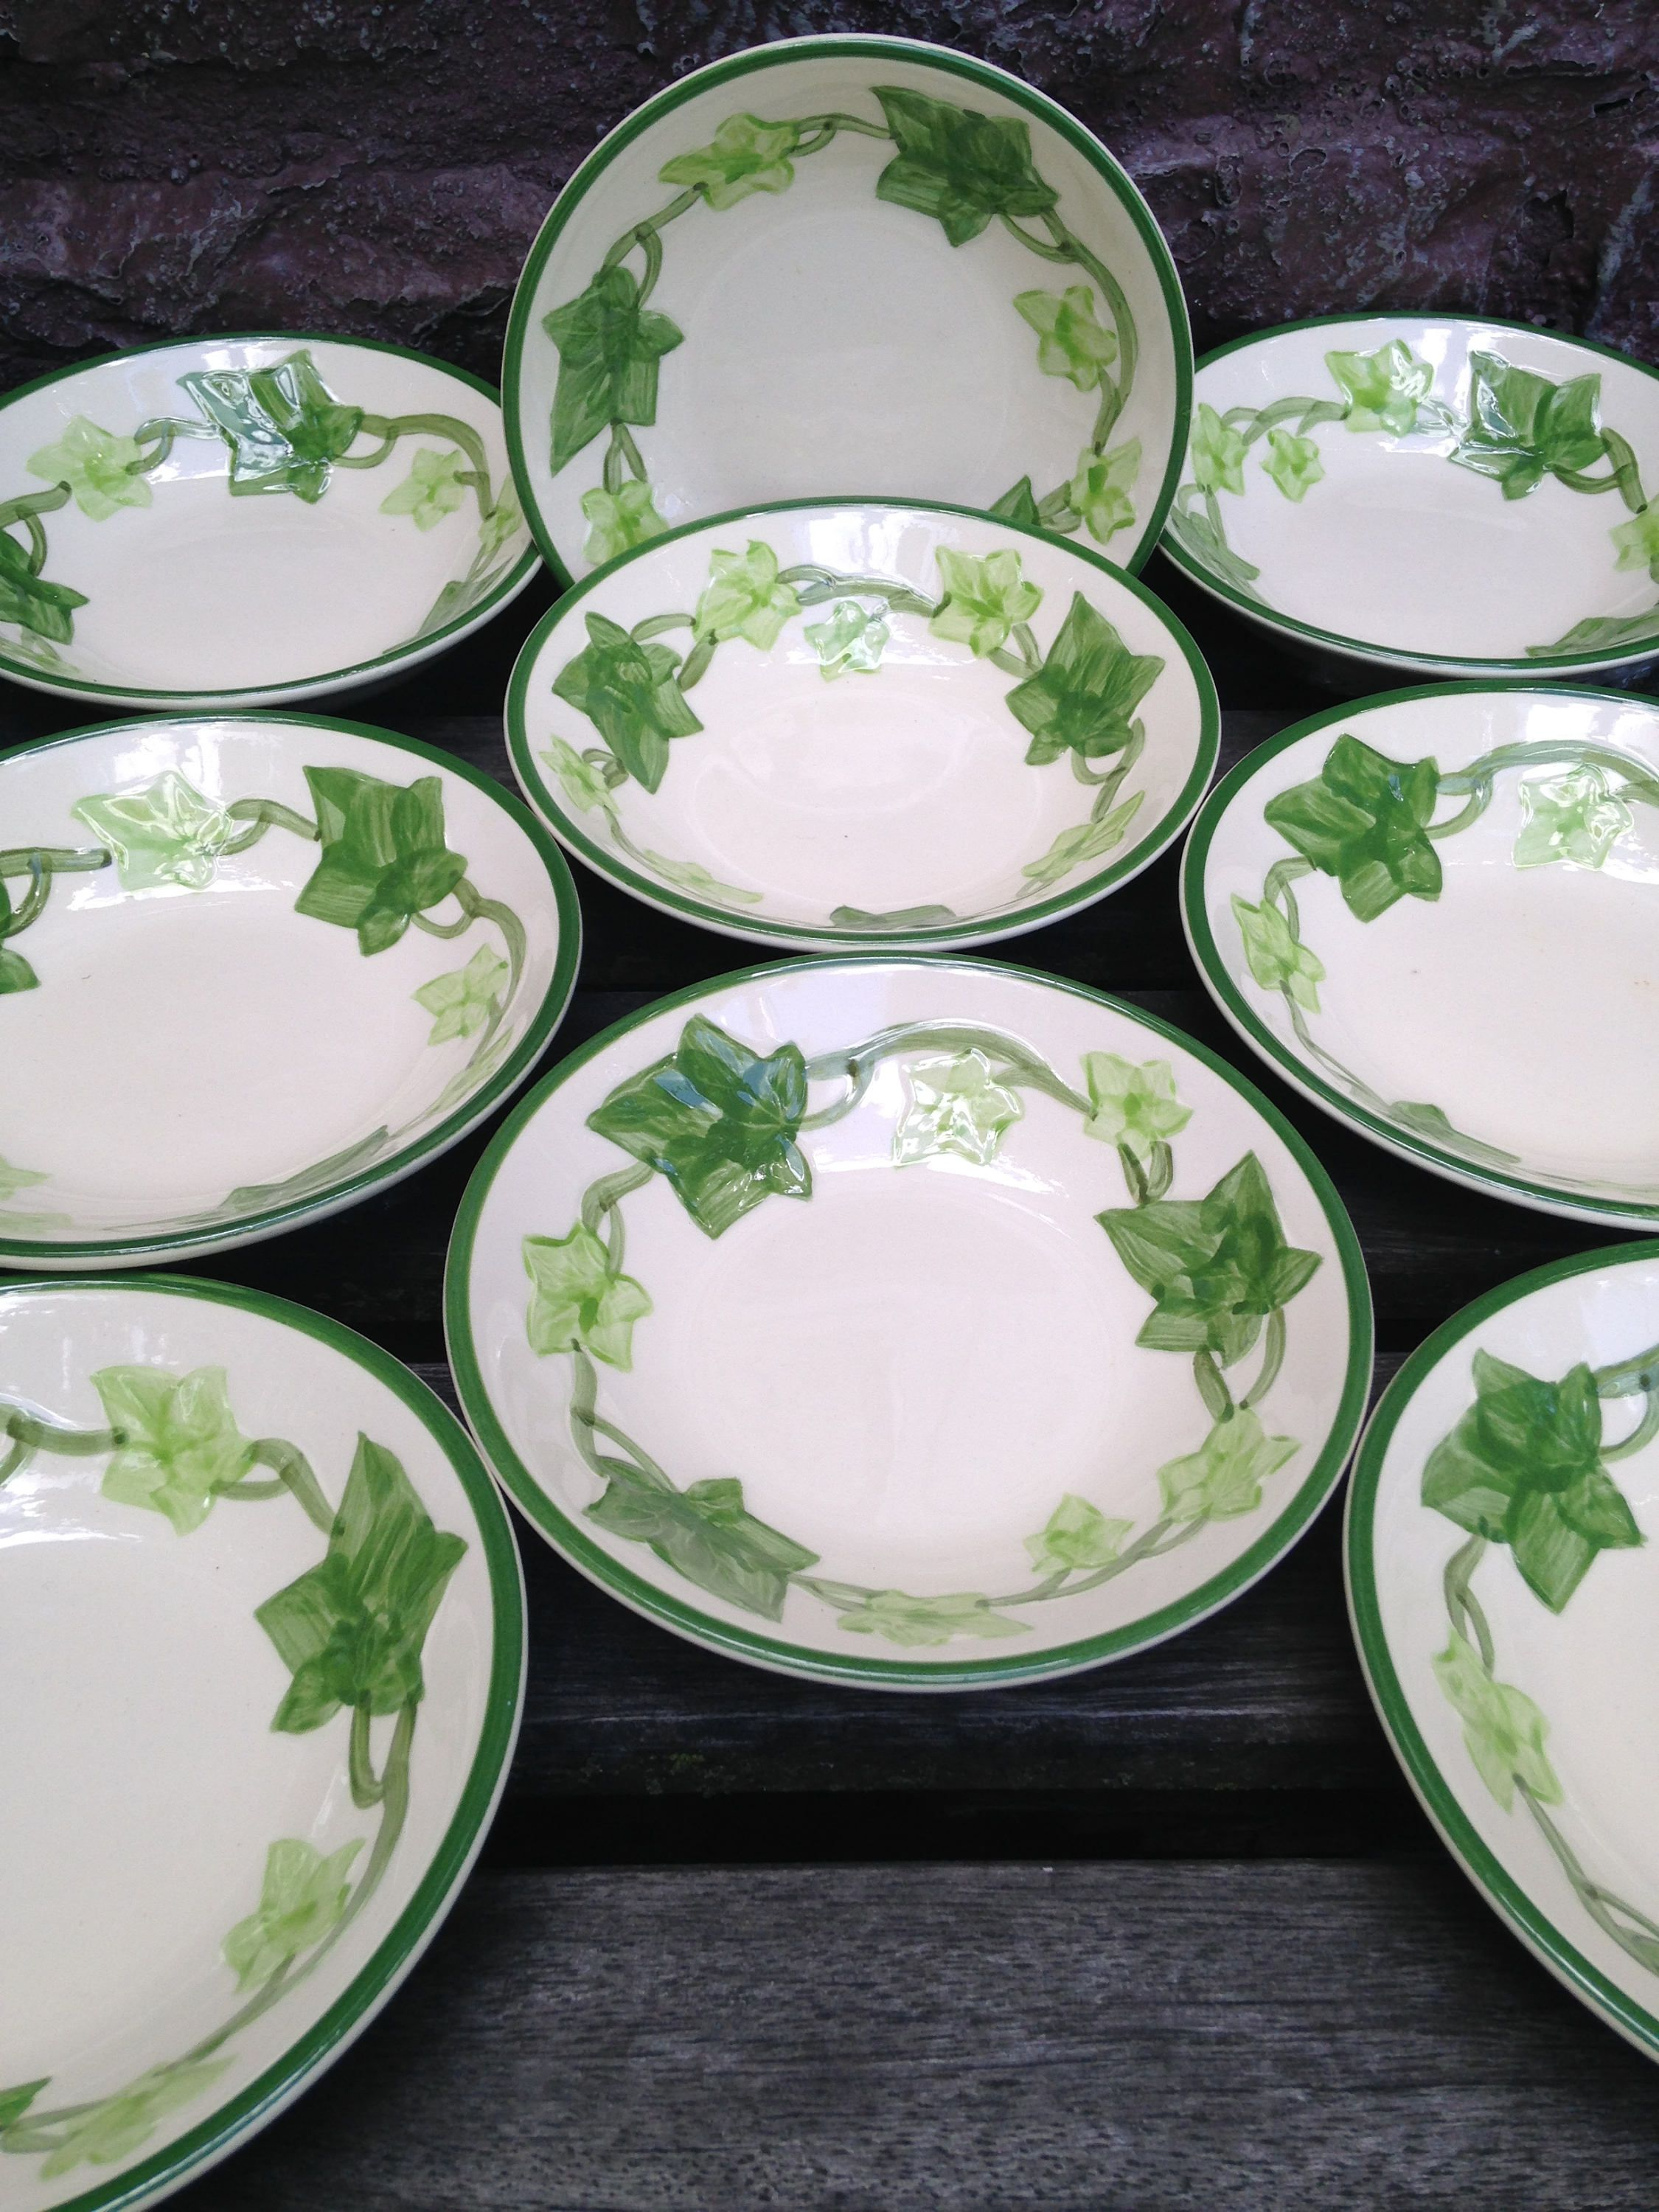 Franciscan Ivy Dessert Bowls USA - Nine Available - Featured on  I Love Lucy  - China Dinnerware Replacement by ThePinkVintageRose on Etsy & Franciscan Ivy Dessert Bowls USA - Nine Available - Featured on